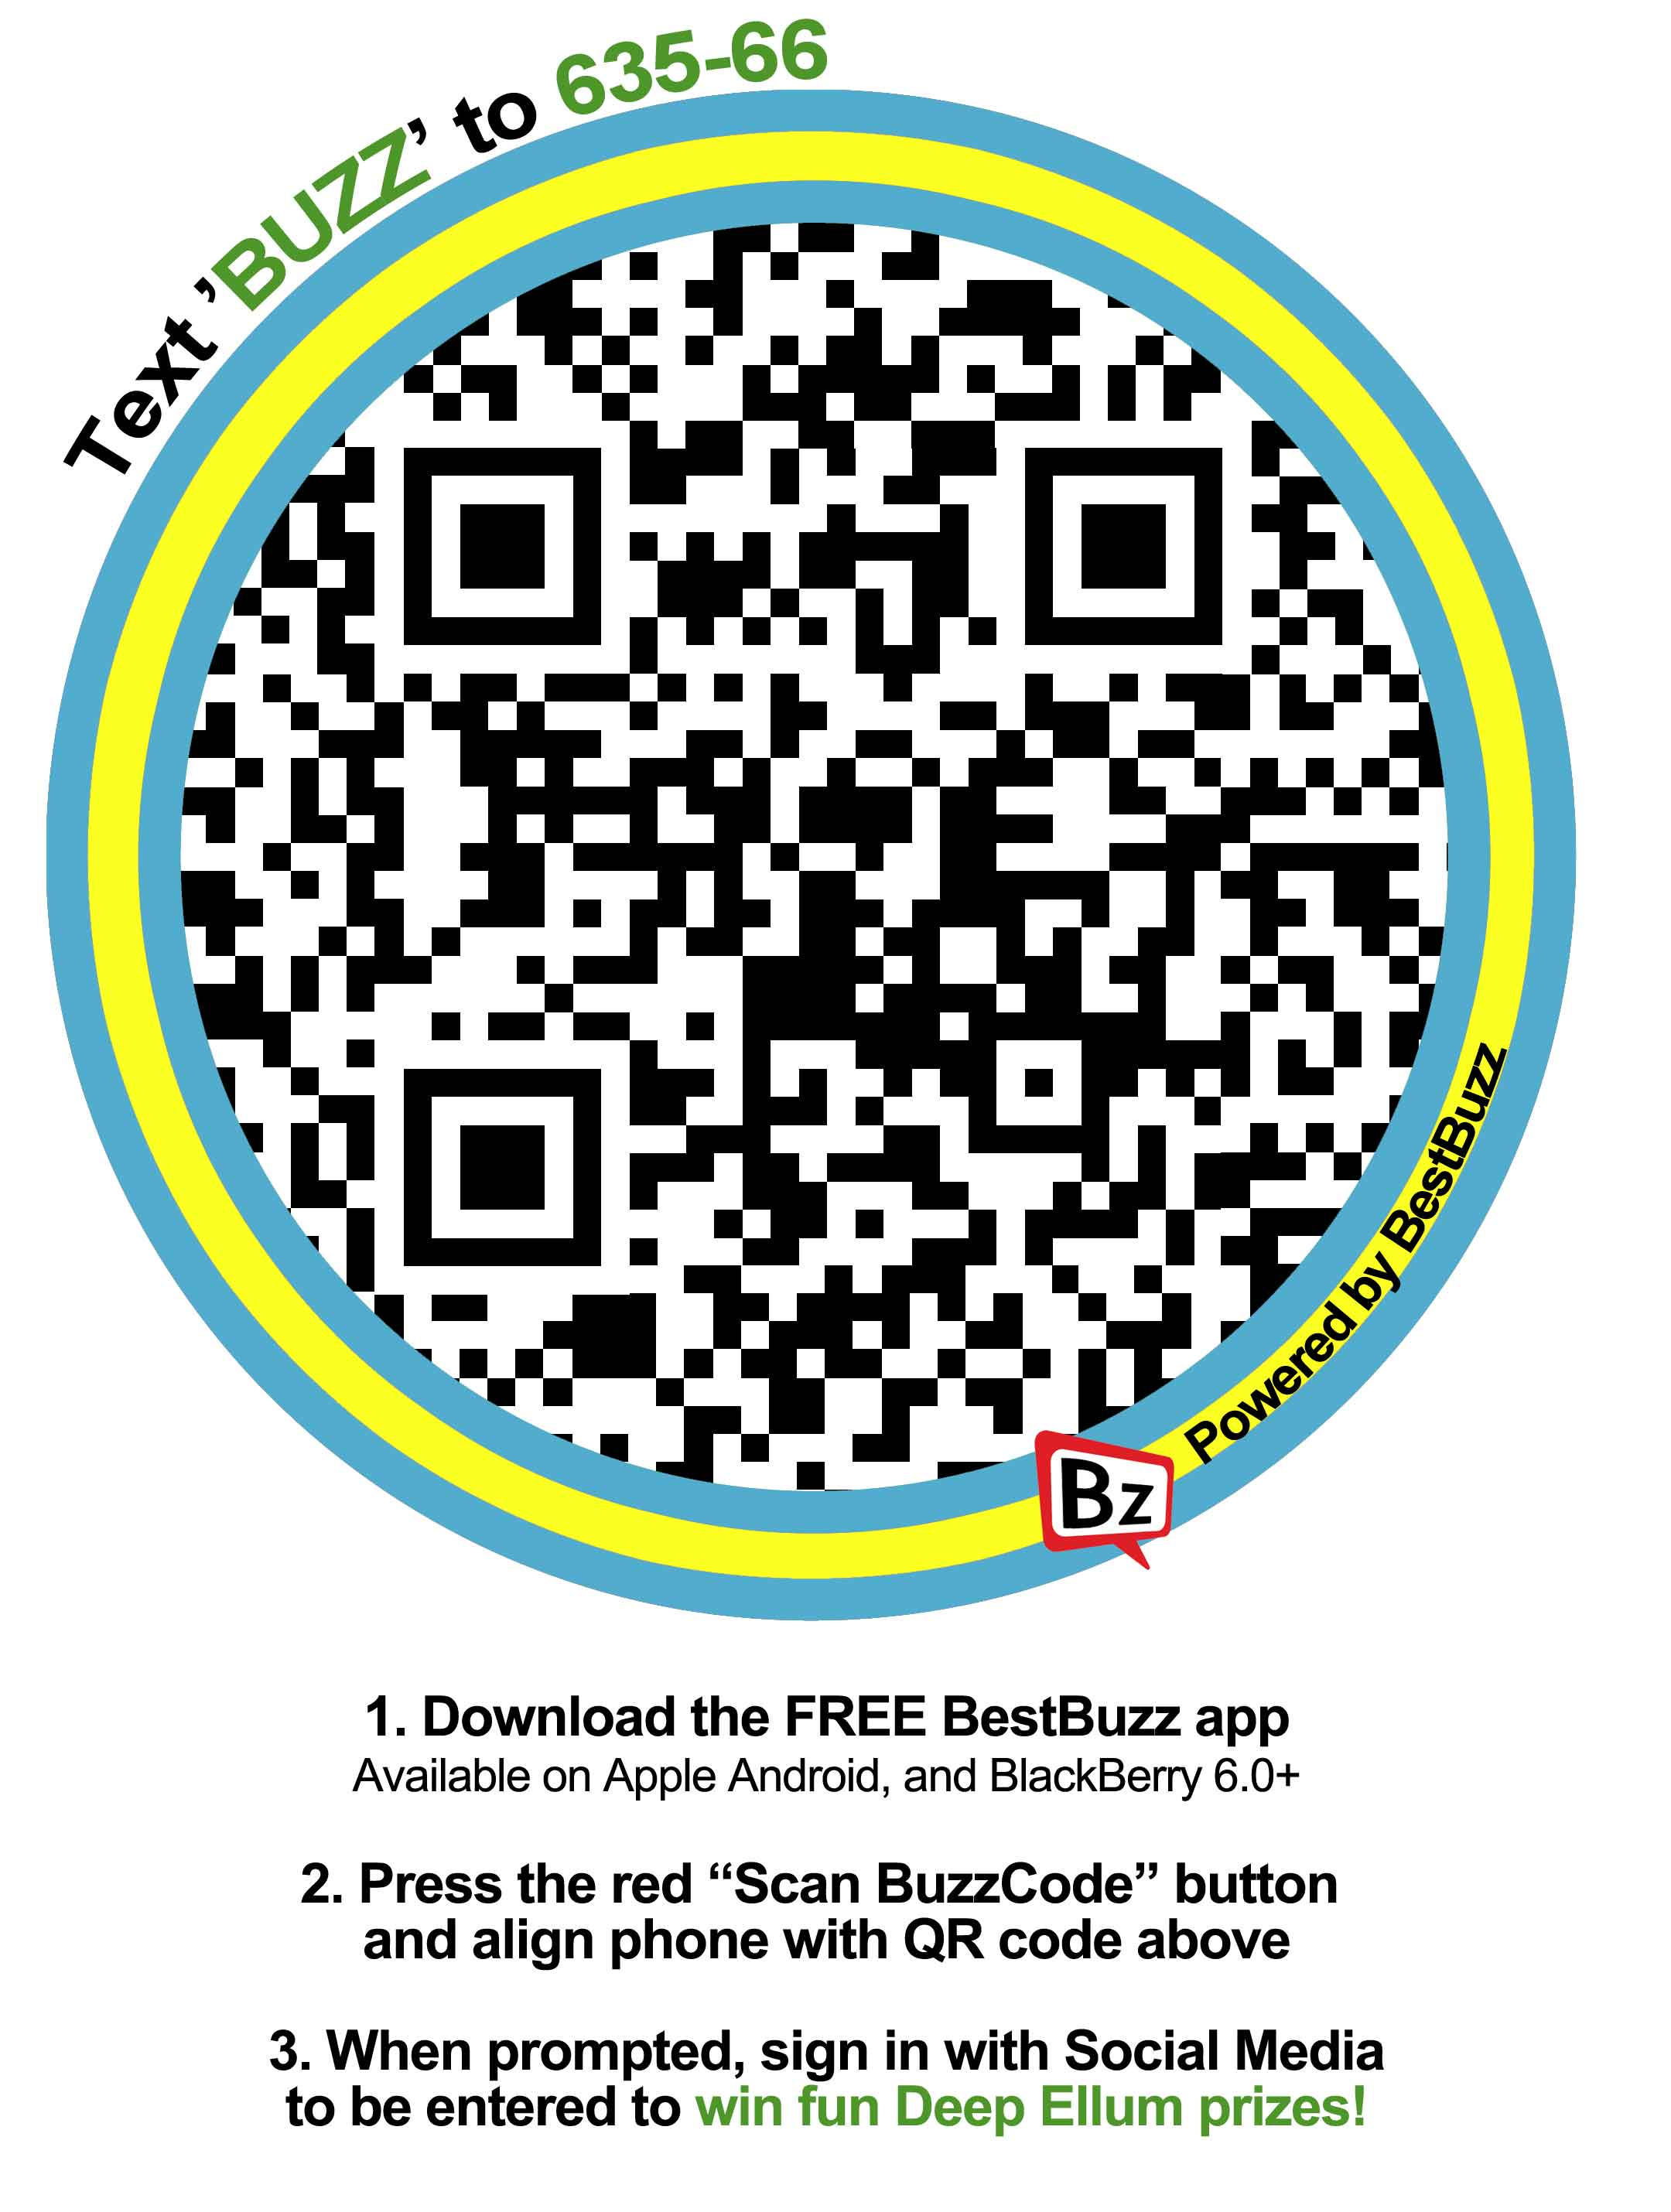 Scan this QR code and win at the Deep Ellum Arts Festival